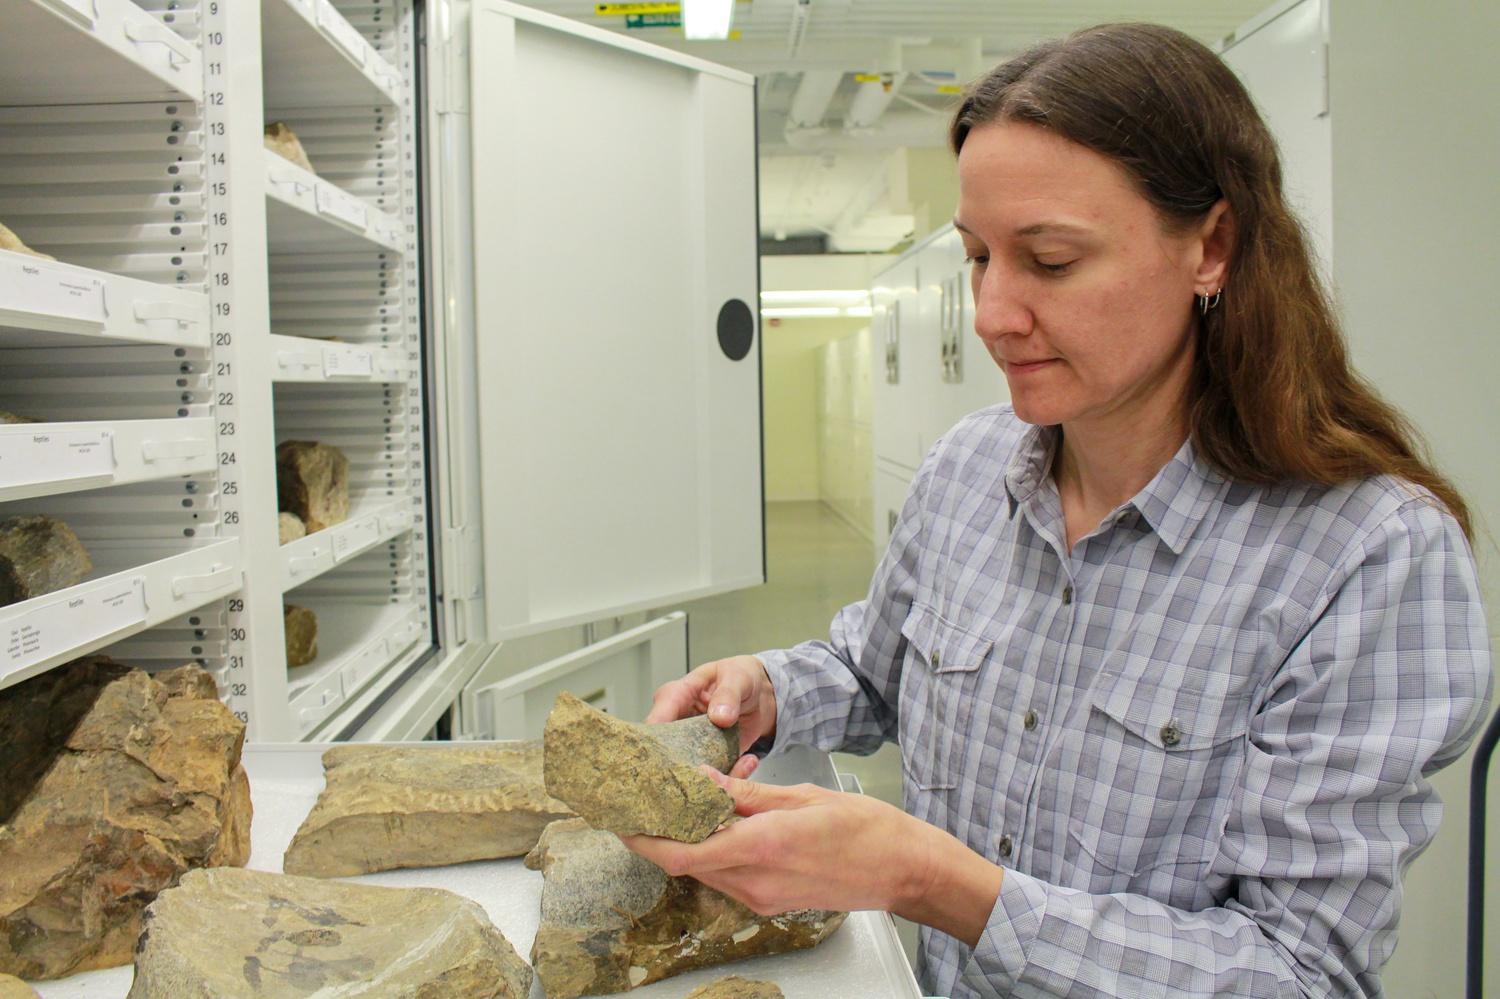 Since February 2001, Jessica Cundiff has worked as a Curatorial Associate in the Verterbrae Paleontology at the Museum of Comparative Zoology, working on projects including a collection renovation, a website redesign, and the digitization of collections data.